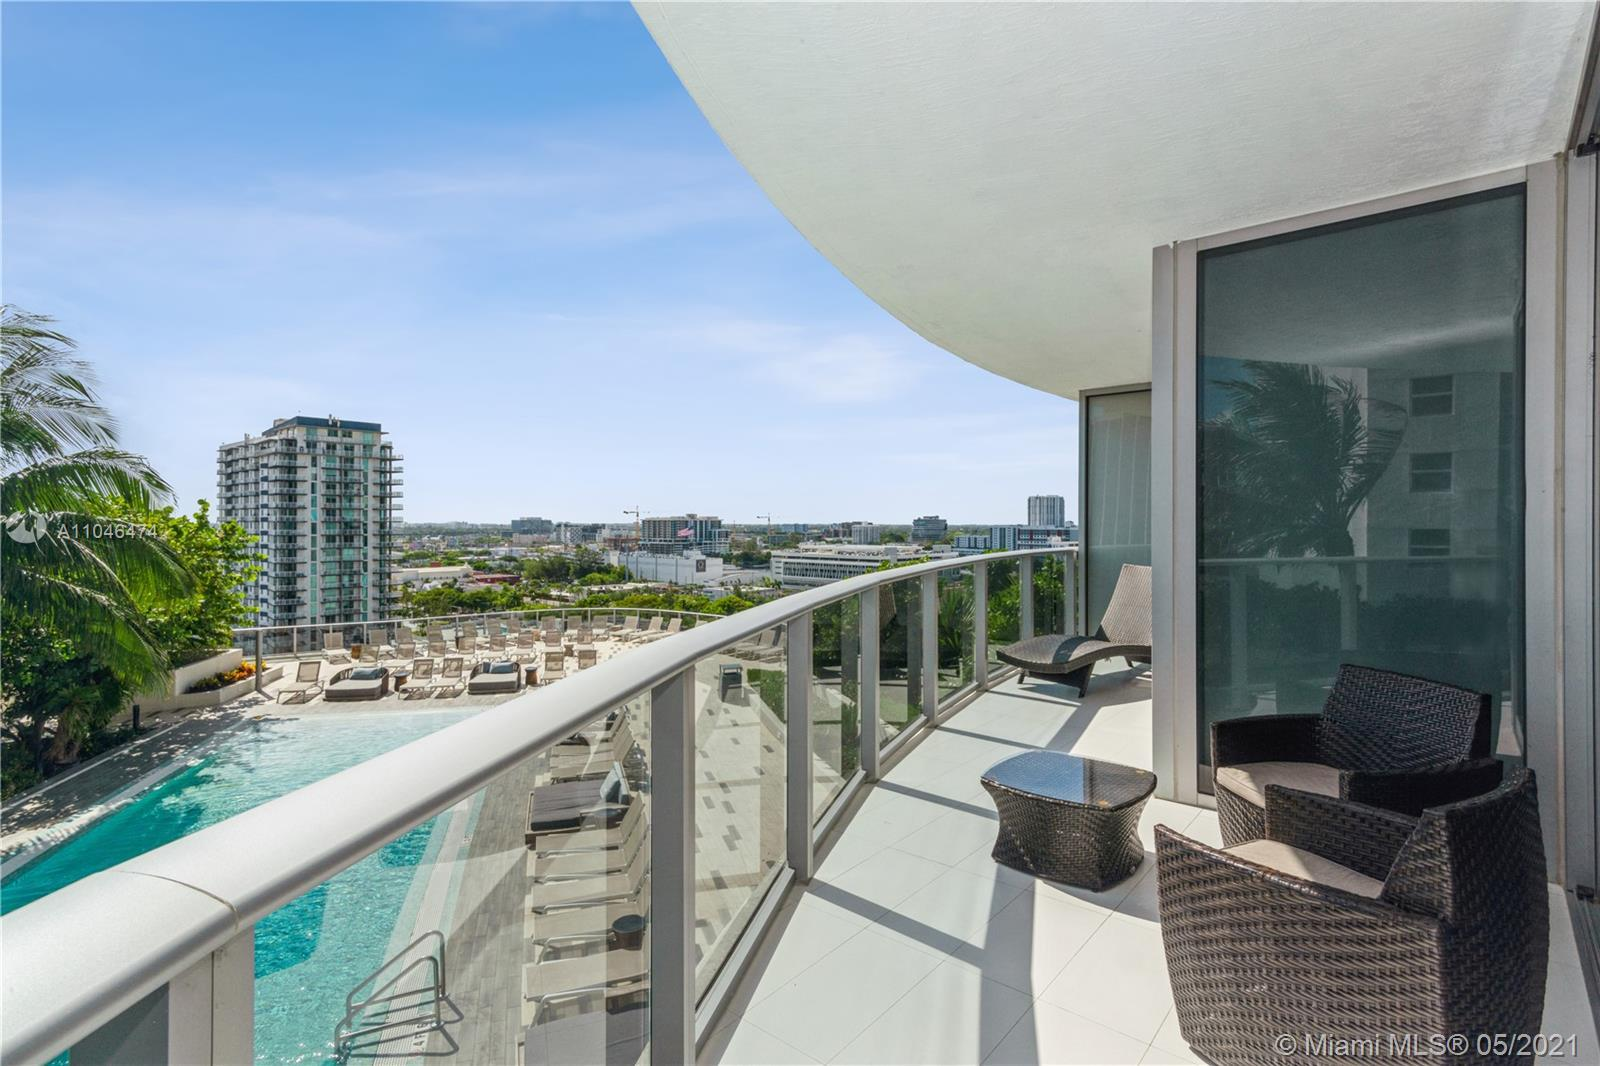 STUNNING 2/2.5 ARIA LUXURY CONDO WITH EXPECTACULAR CITY AND OCEAN VIEWS LOCATED ON THE VERY DESIRABL